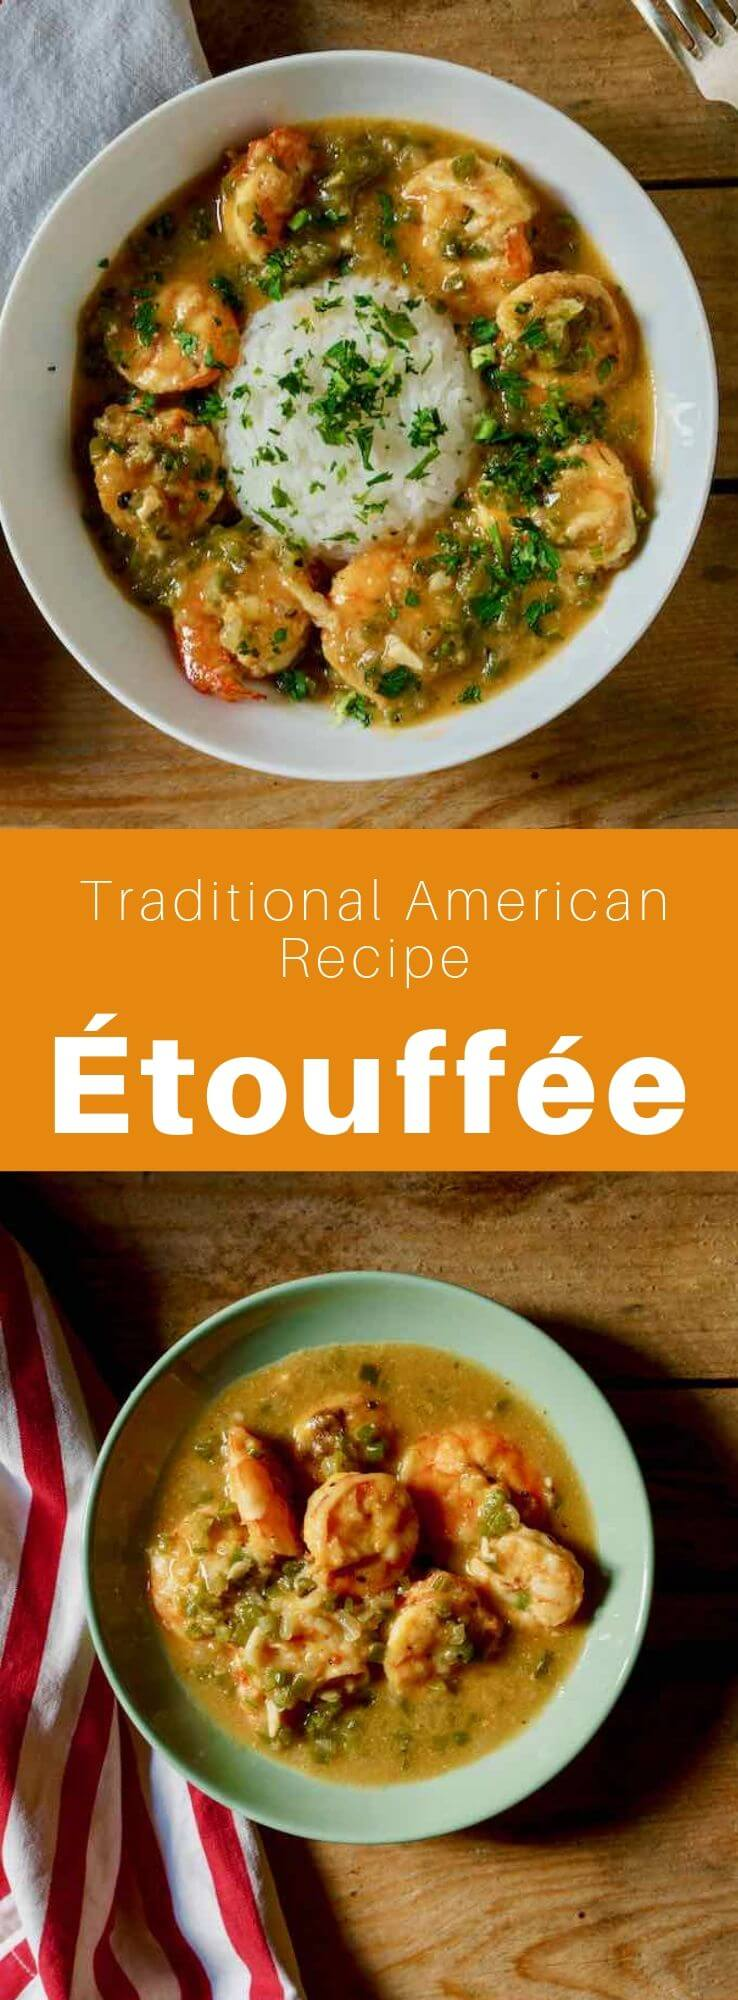 Étouffée is a delicious traditional Louisiana dish with crayfish tails cooked in a tasty butter sauce with herbs and spices. #SouthernFood #SouthernRecipe #SouthernCuisine #AmericanRecipe #AmericanFood #AmericanCuisine #WorldCuisine #196flavors